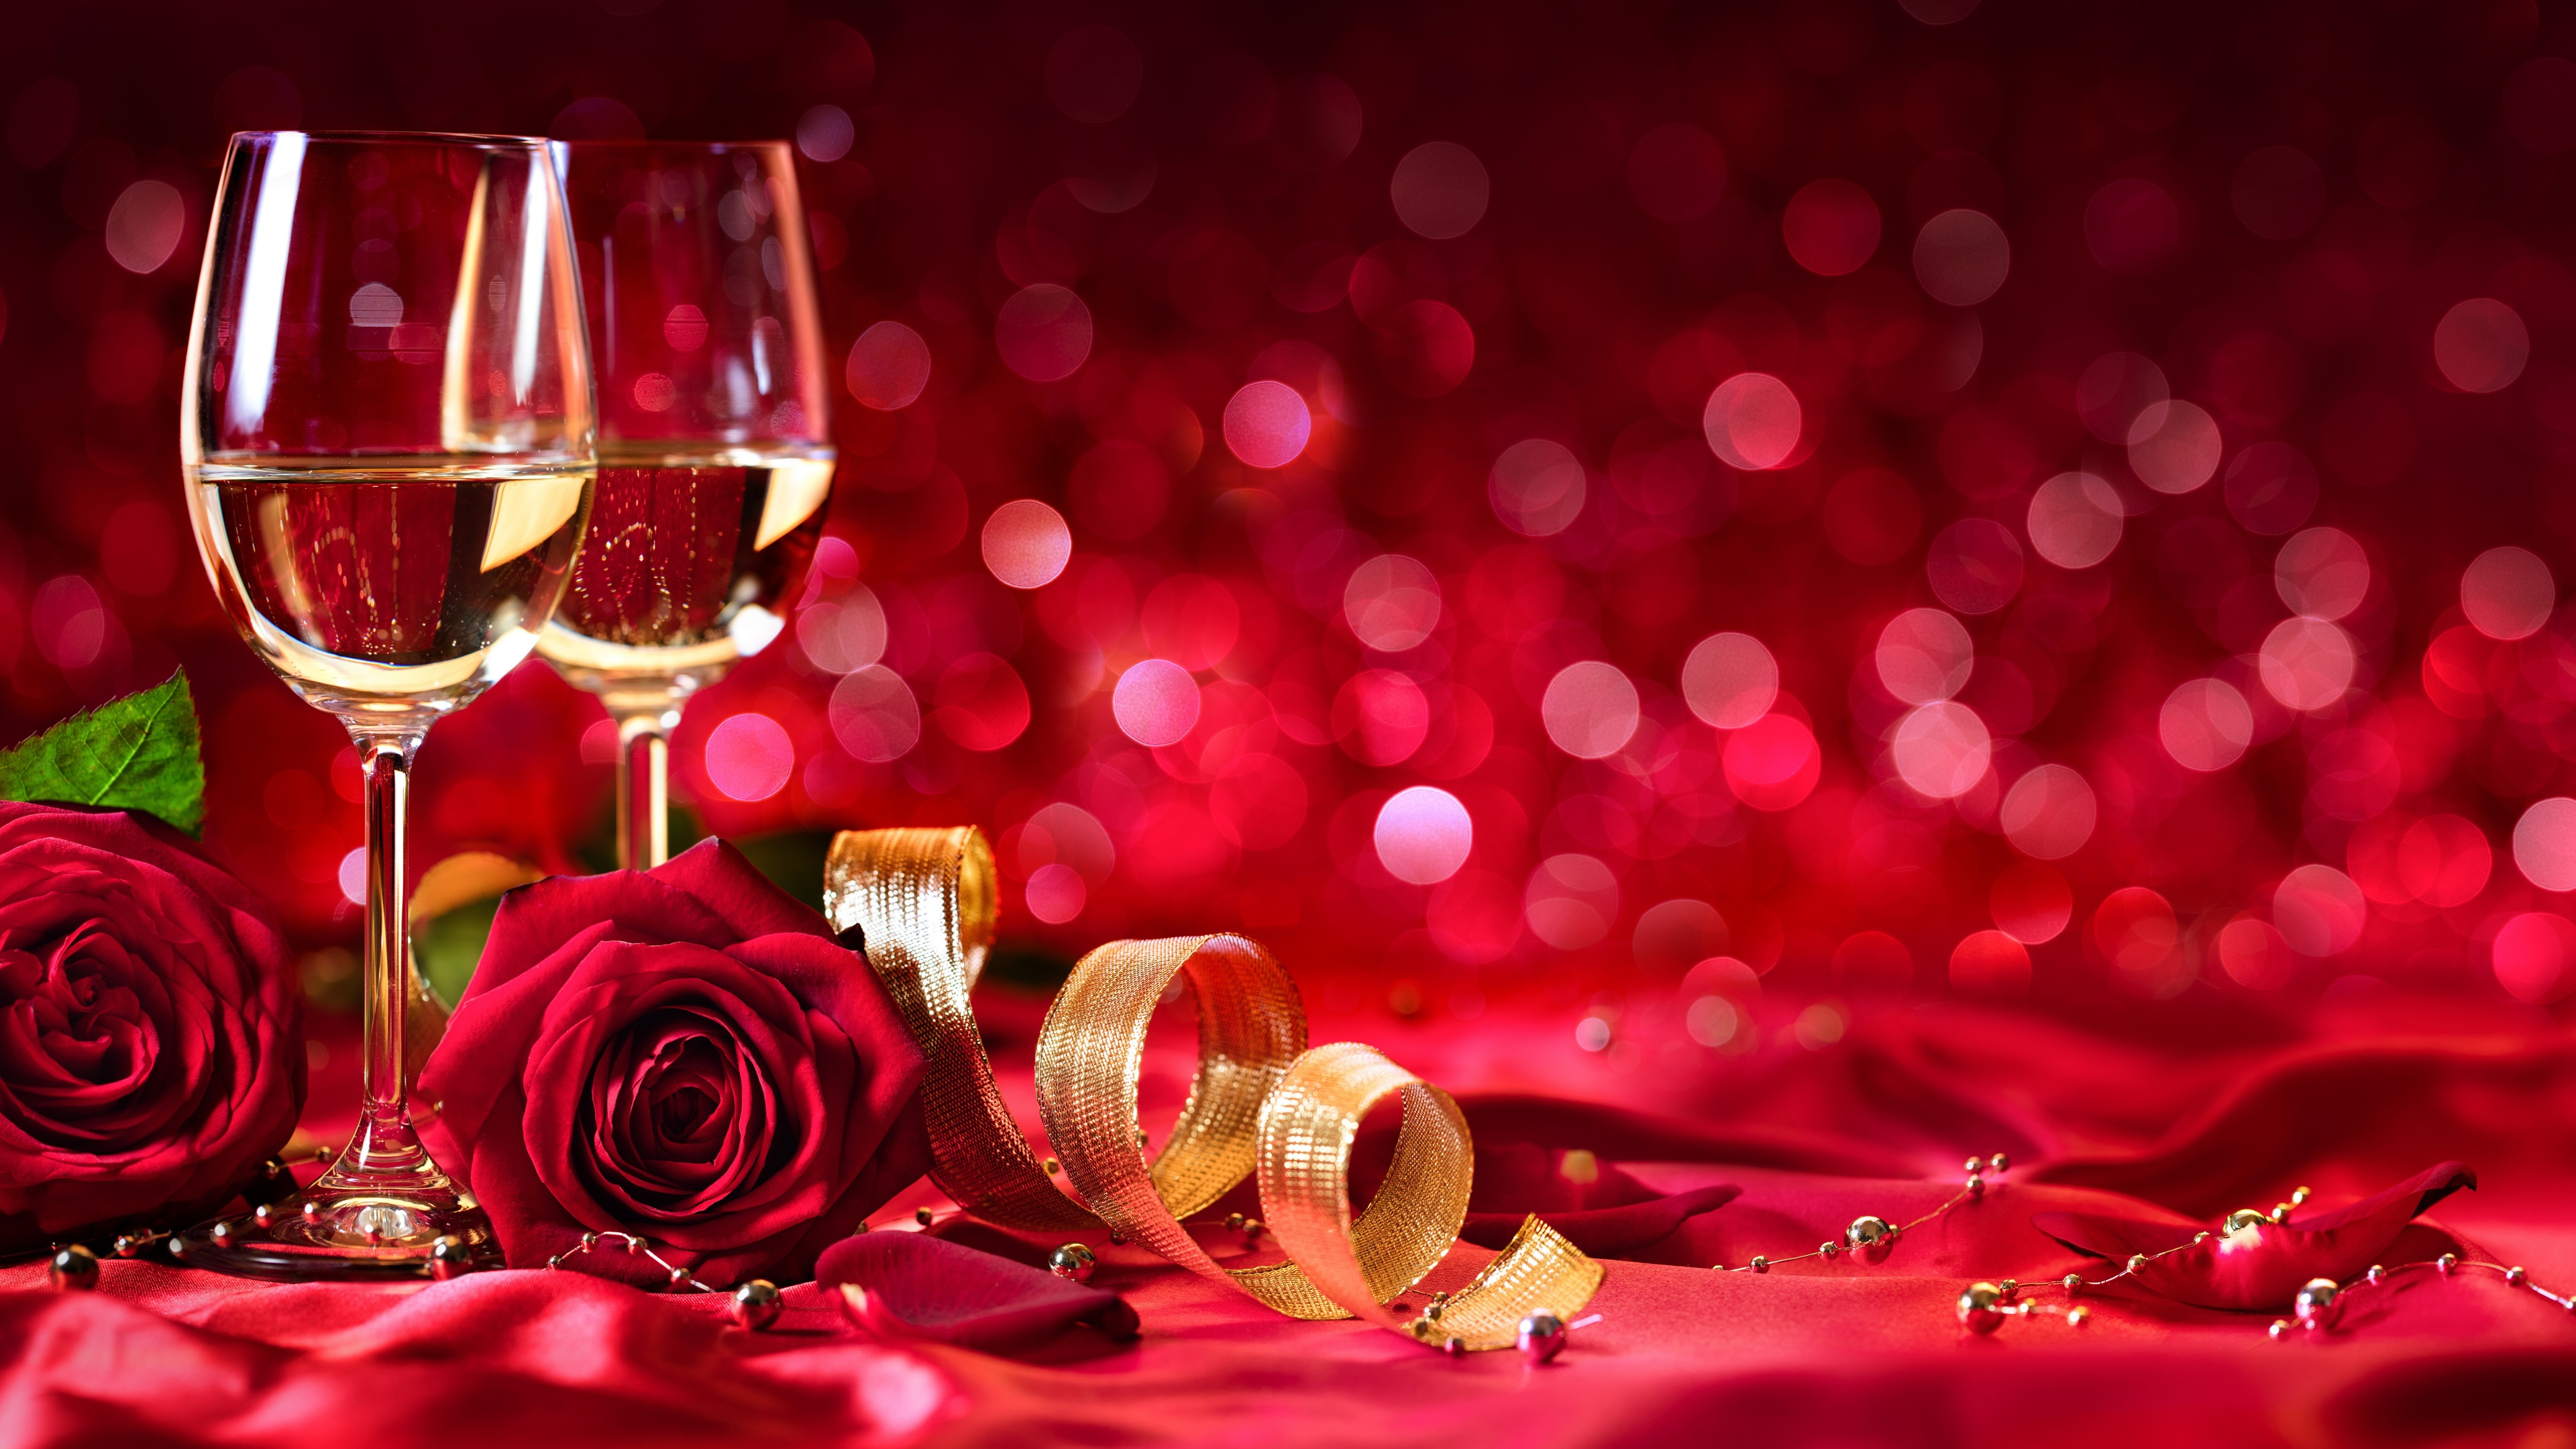 wine red roses shine red background romantic wallpaper